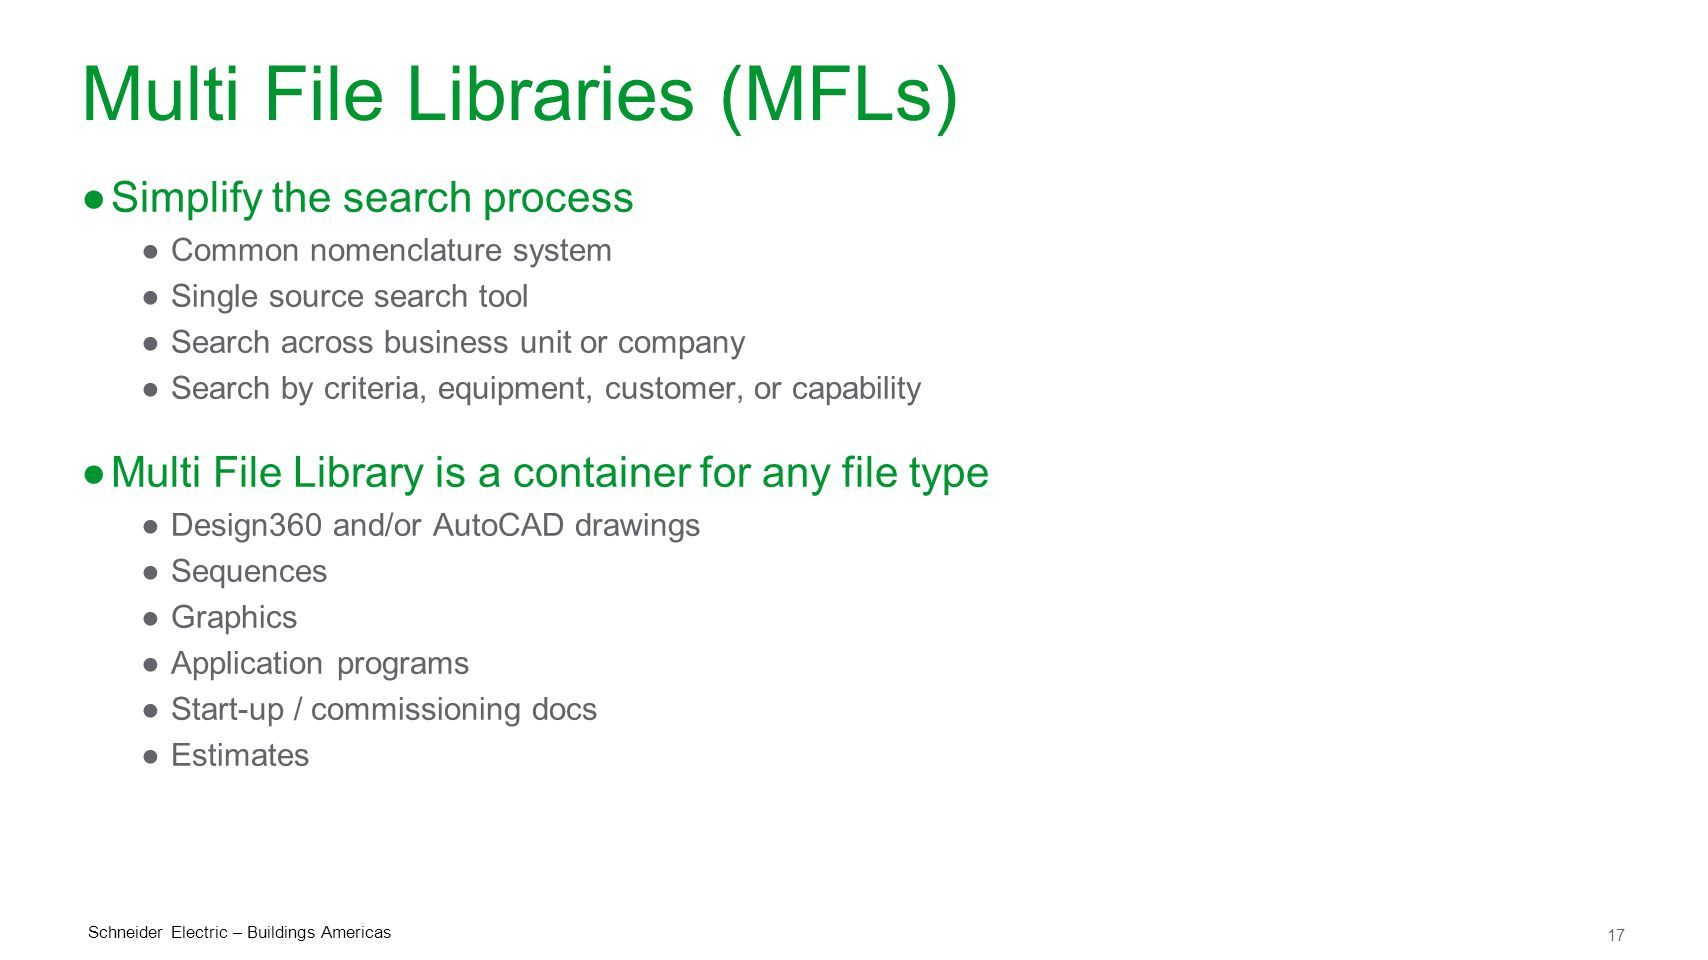 Multi File Libraries (MFLs)